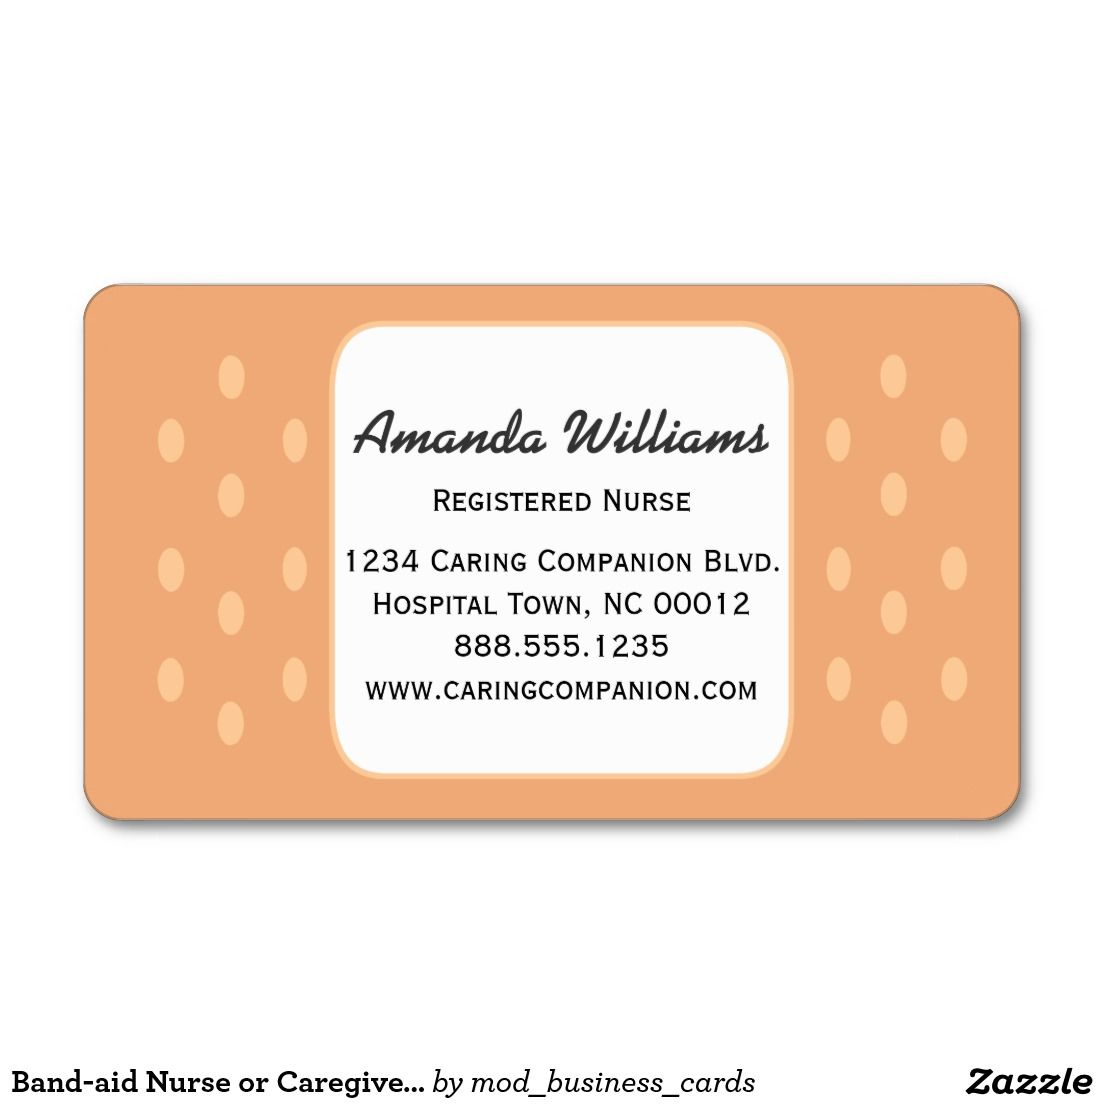 Band-aid Nurse or Caregiver Business Card | Caregiver, Nurses and ...